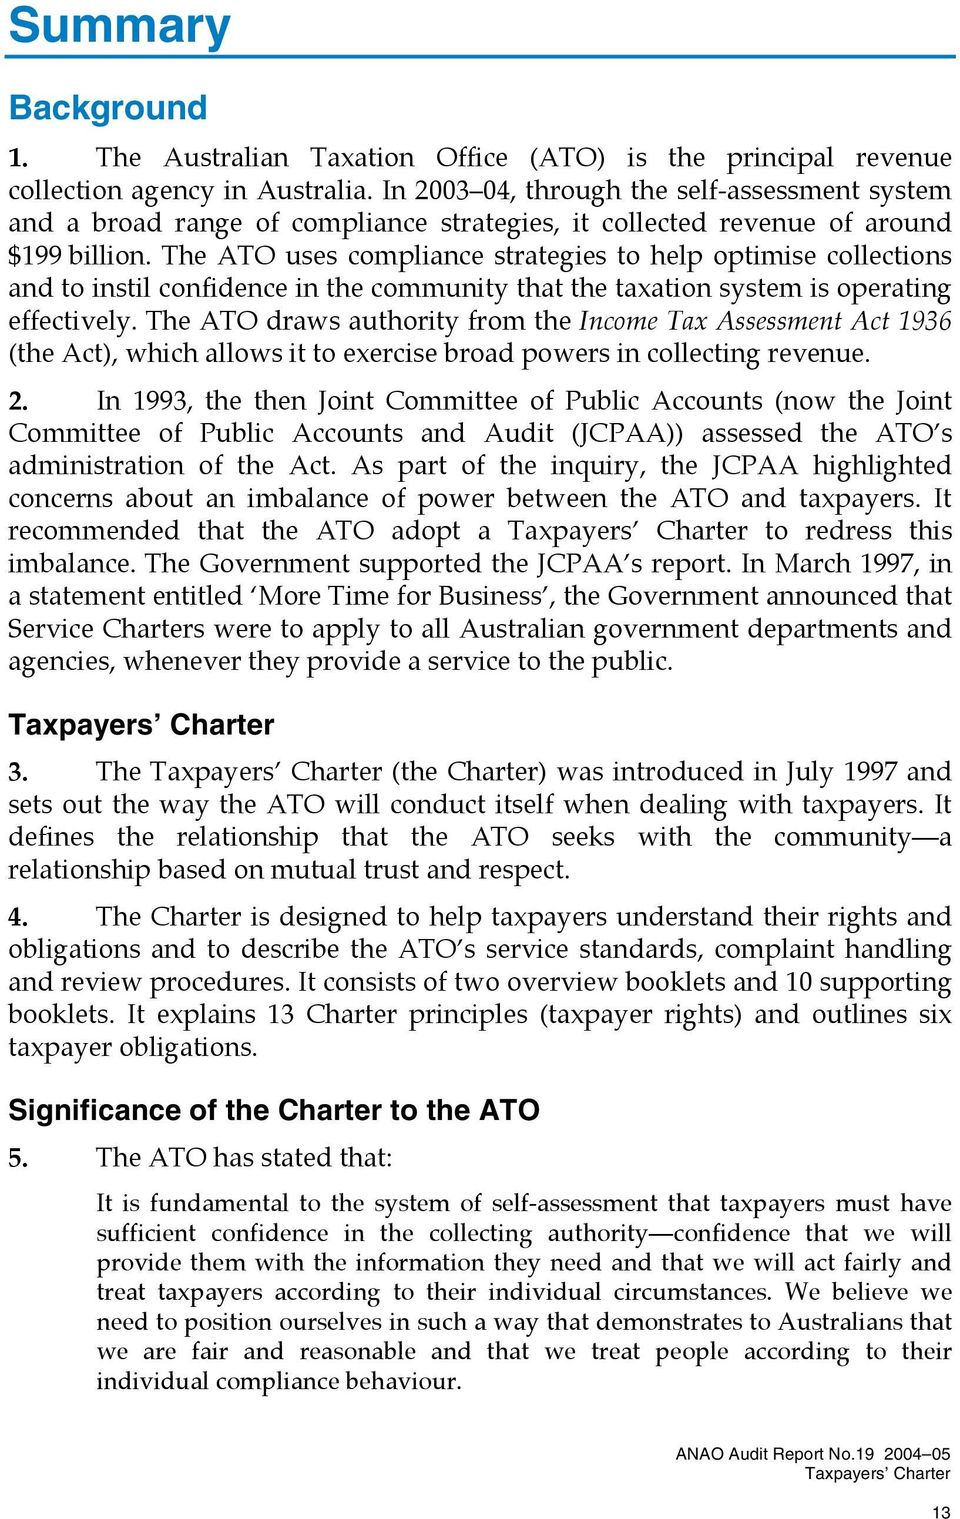 The ATO uses compliance strategies to help optimise collections and to instil confidence in the community that the taxation system is operating effectively.